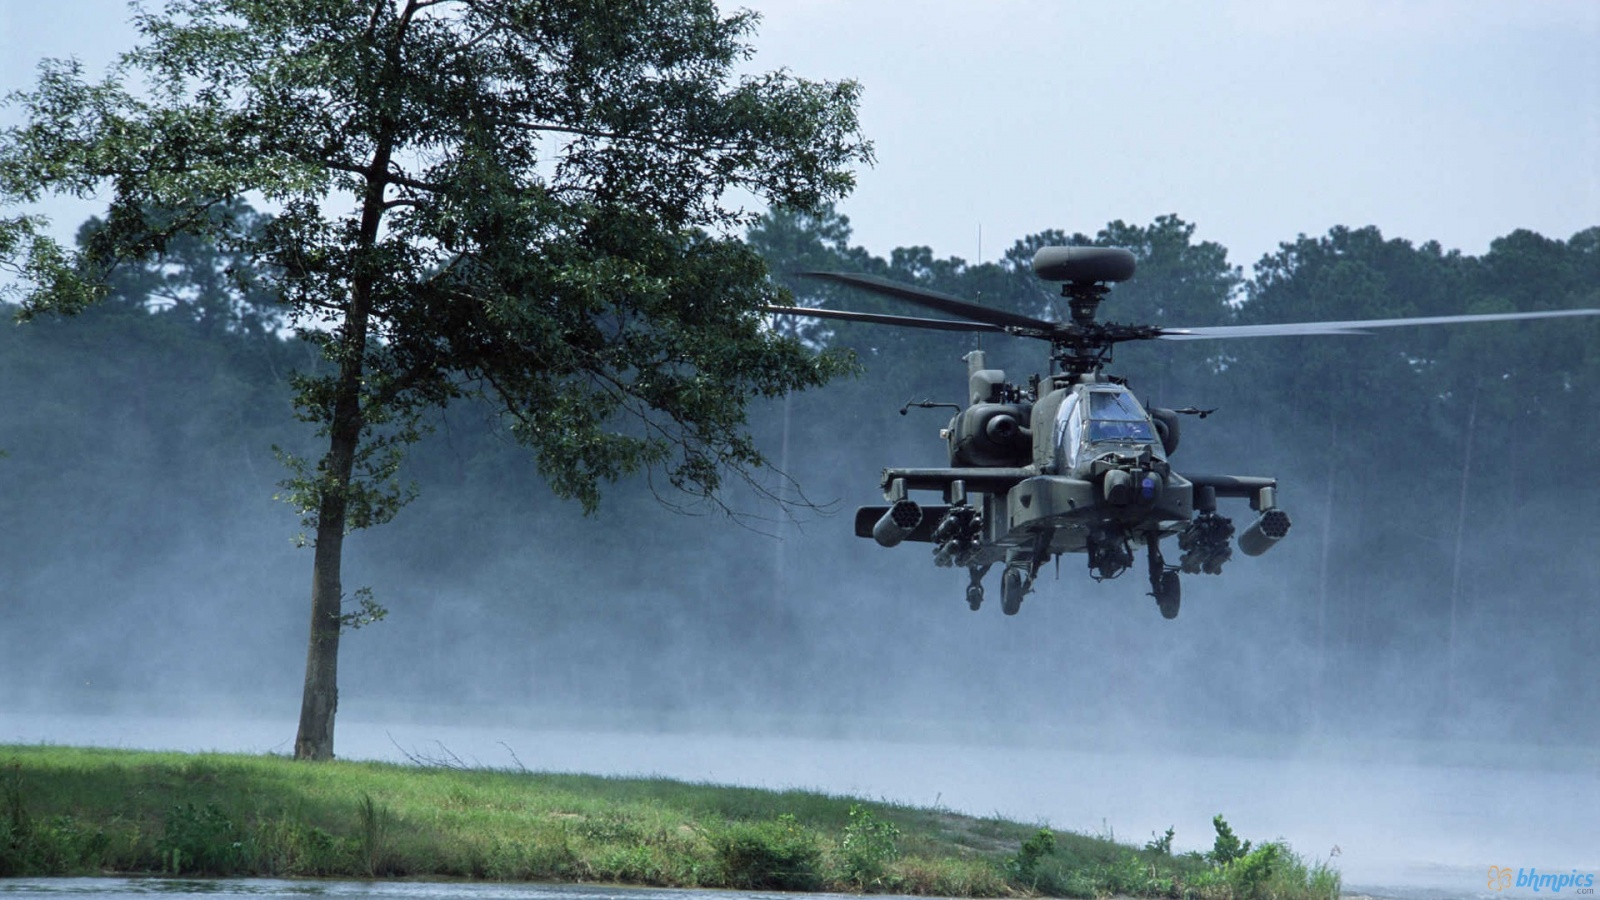 Apache Helicopter HD Wallpaper Res in high quality wallpaper desktop 1600x900